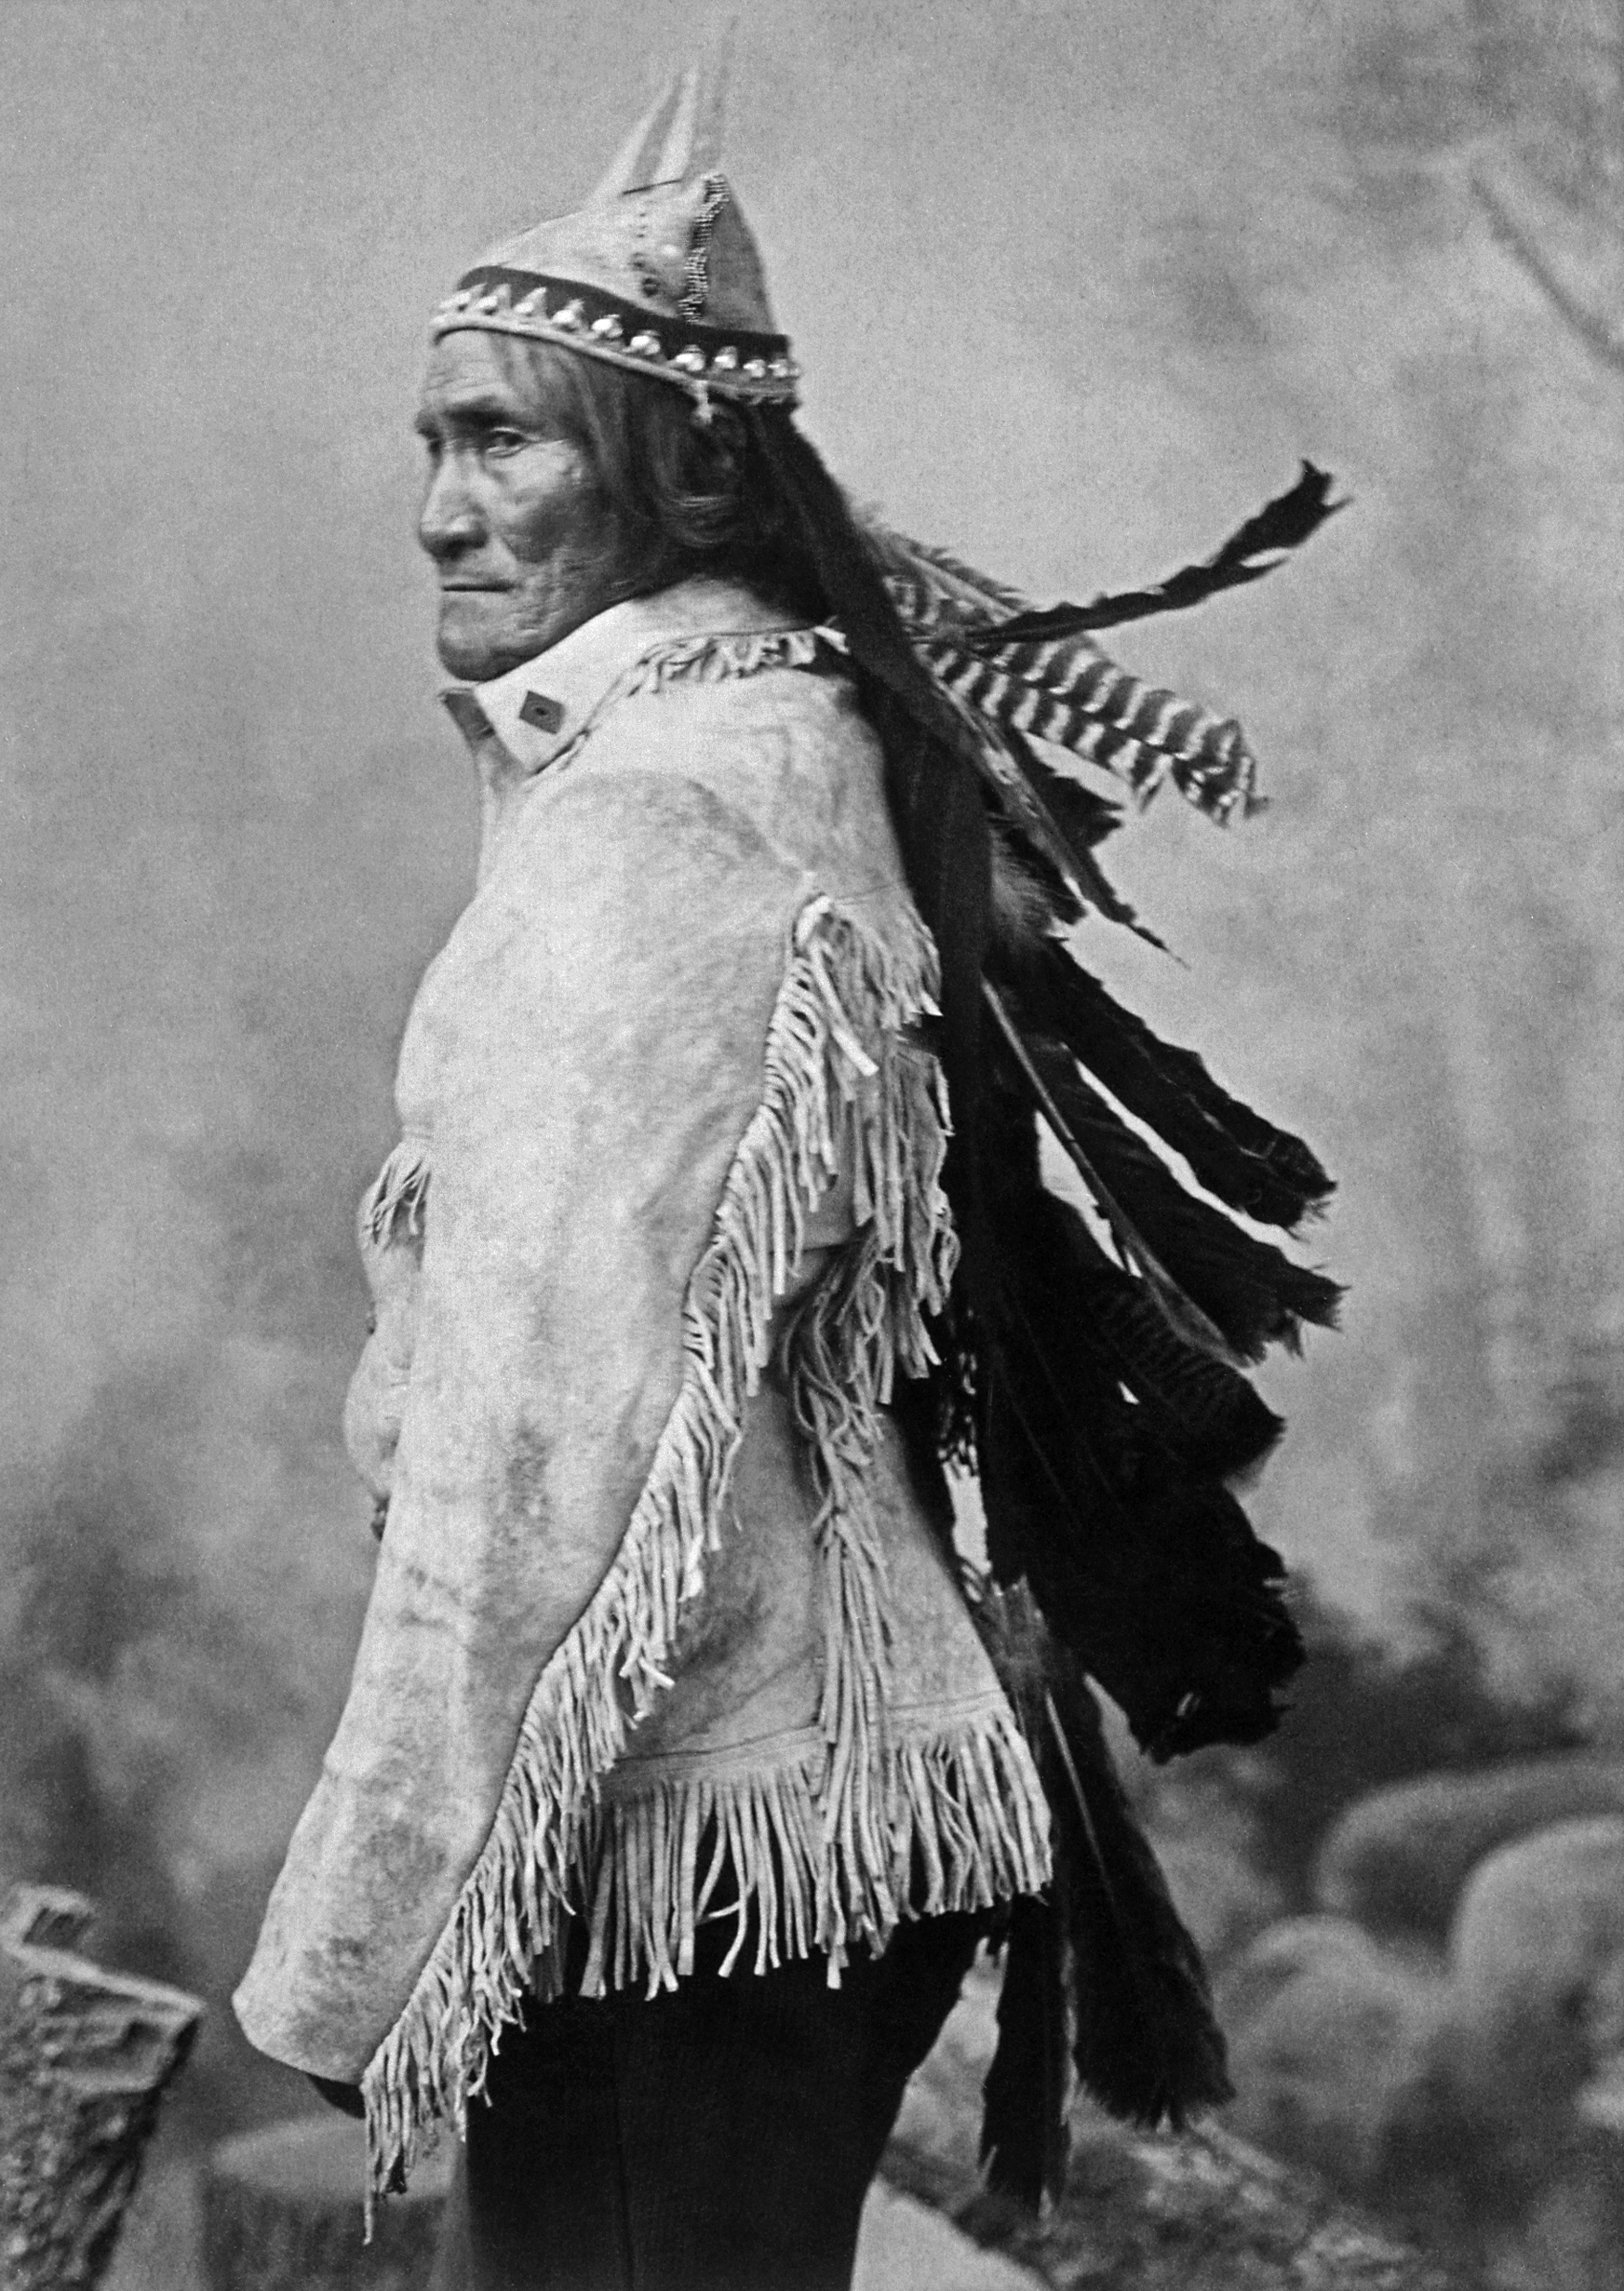 File:<b>Geronimo</b> (From L. D. Greene Album) - NARA - 533082restoredh.jpg